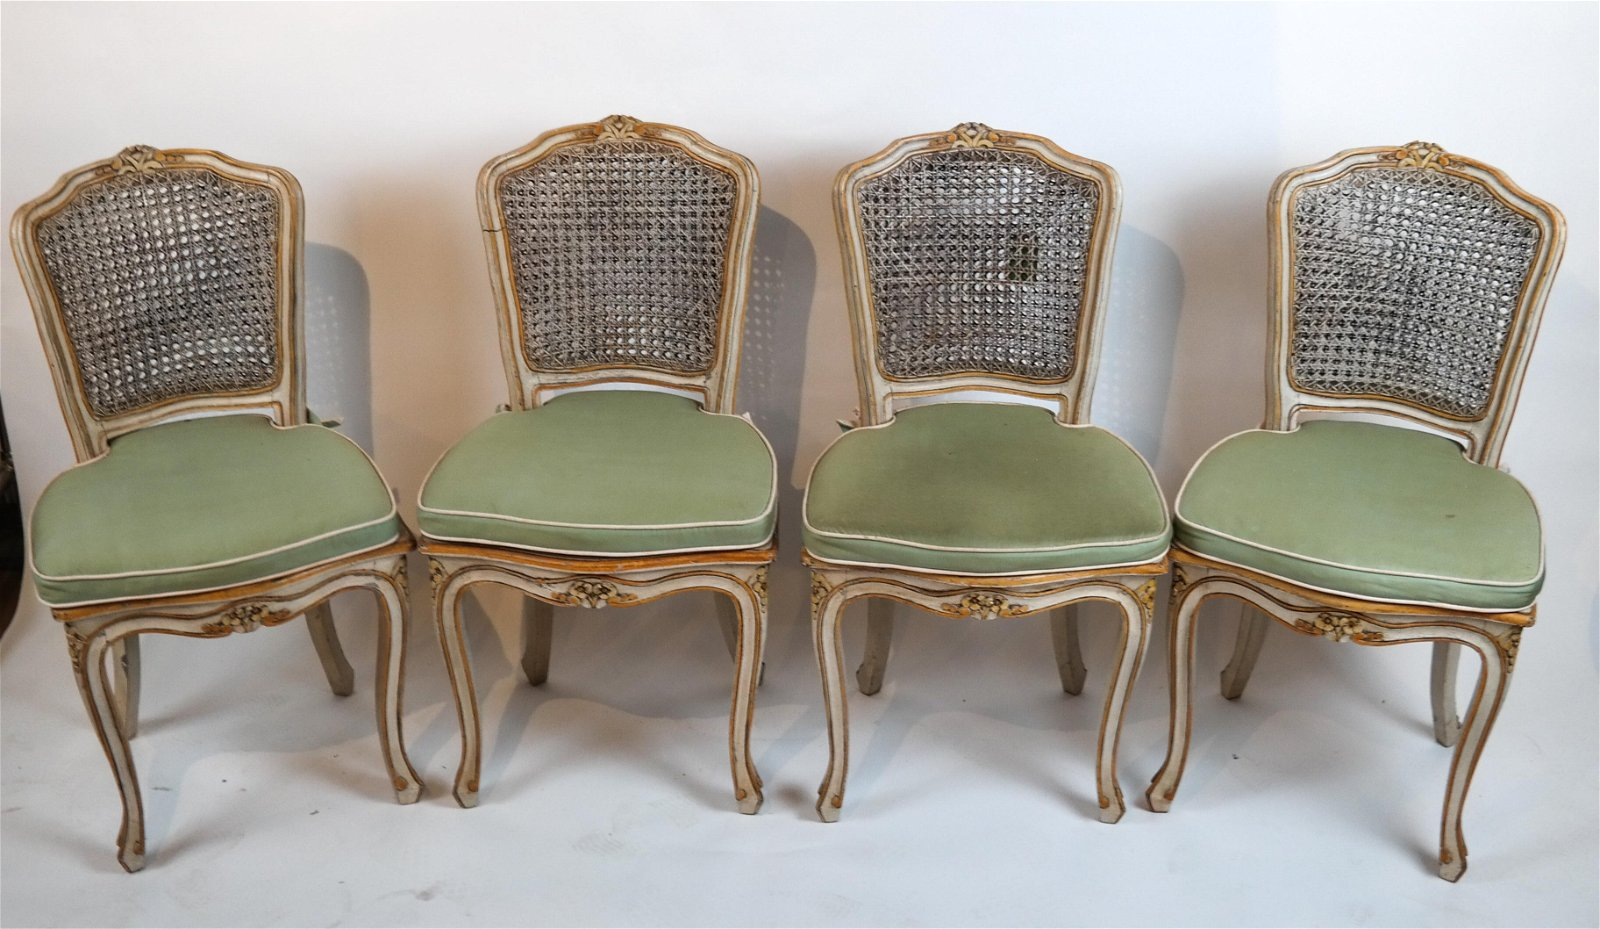 Set of 4 Creme Gilt Caned Side Chairs